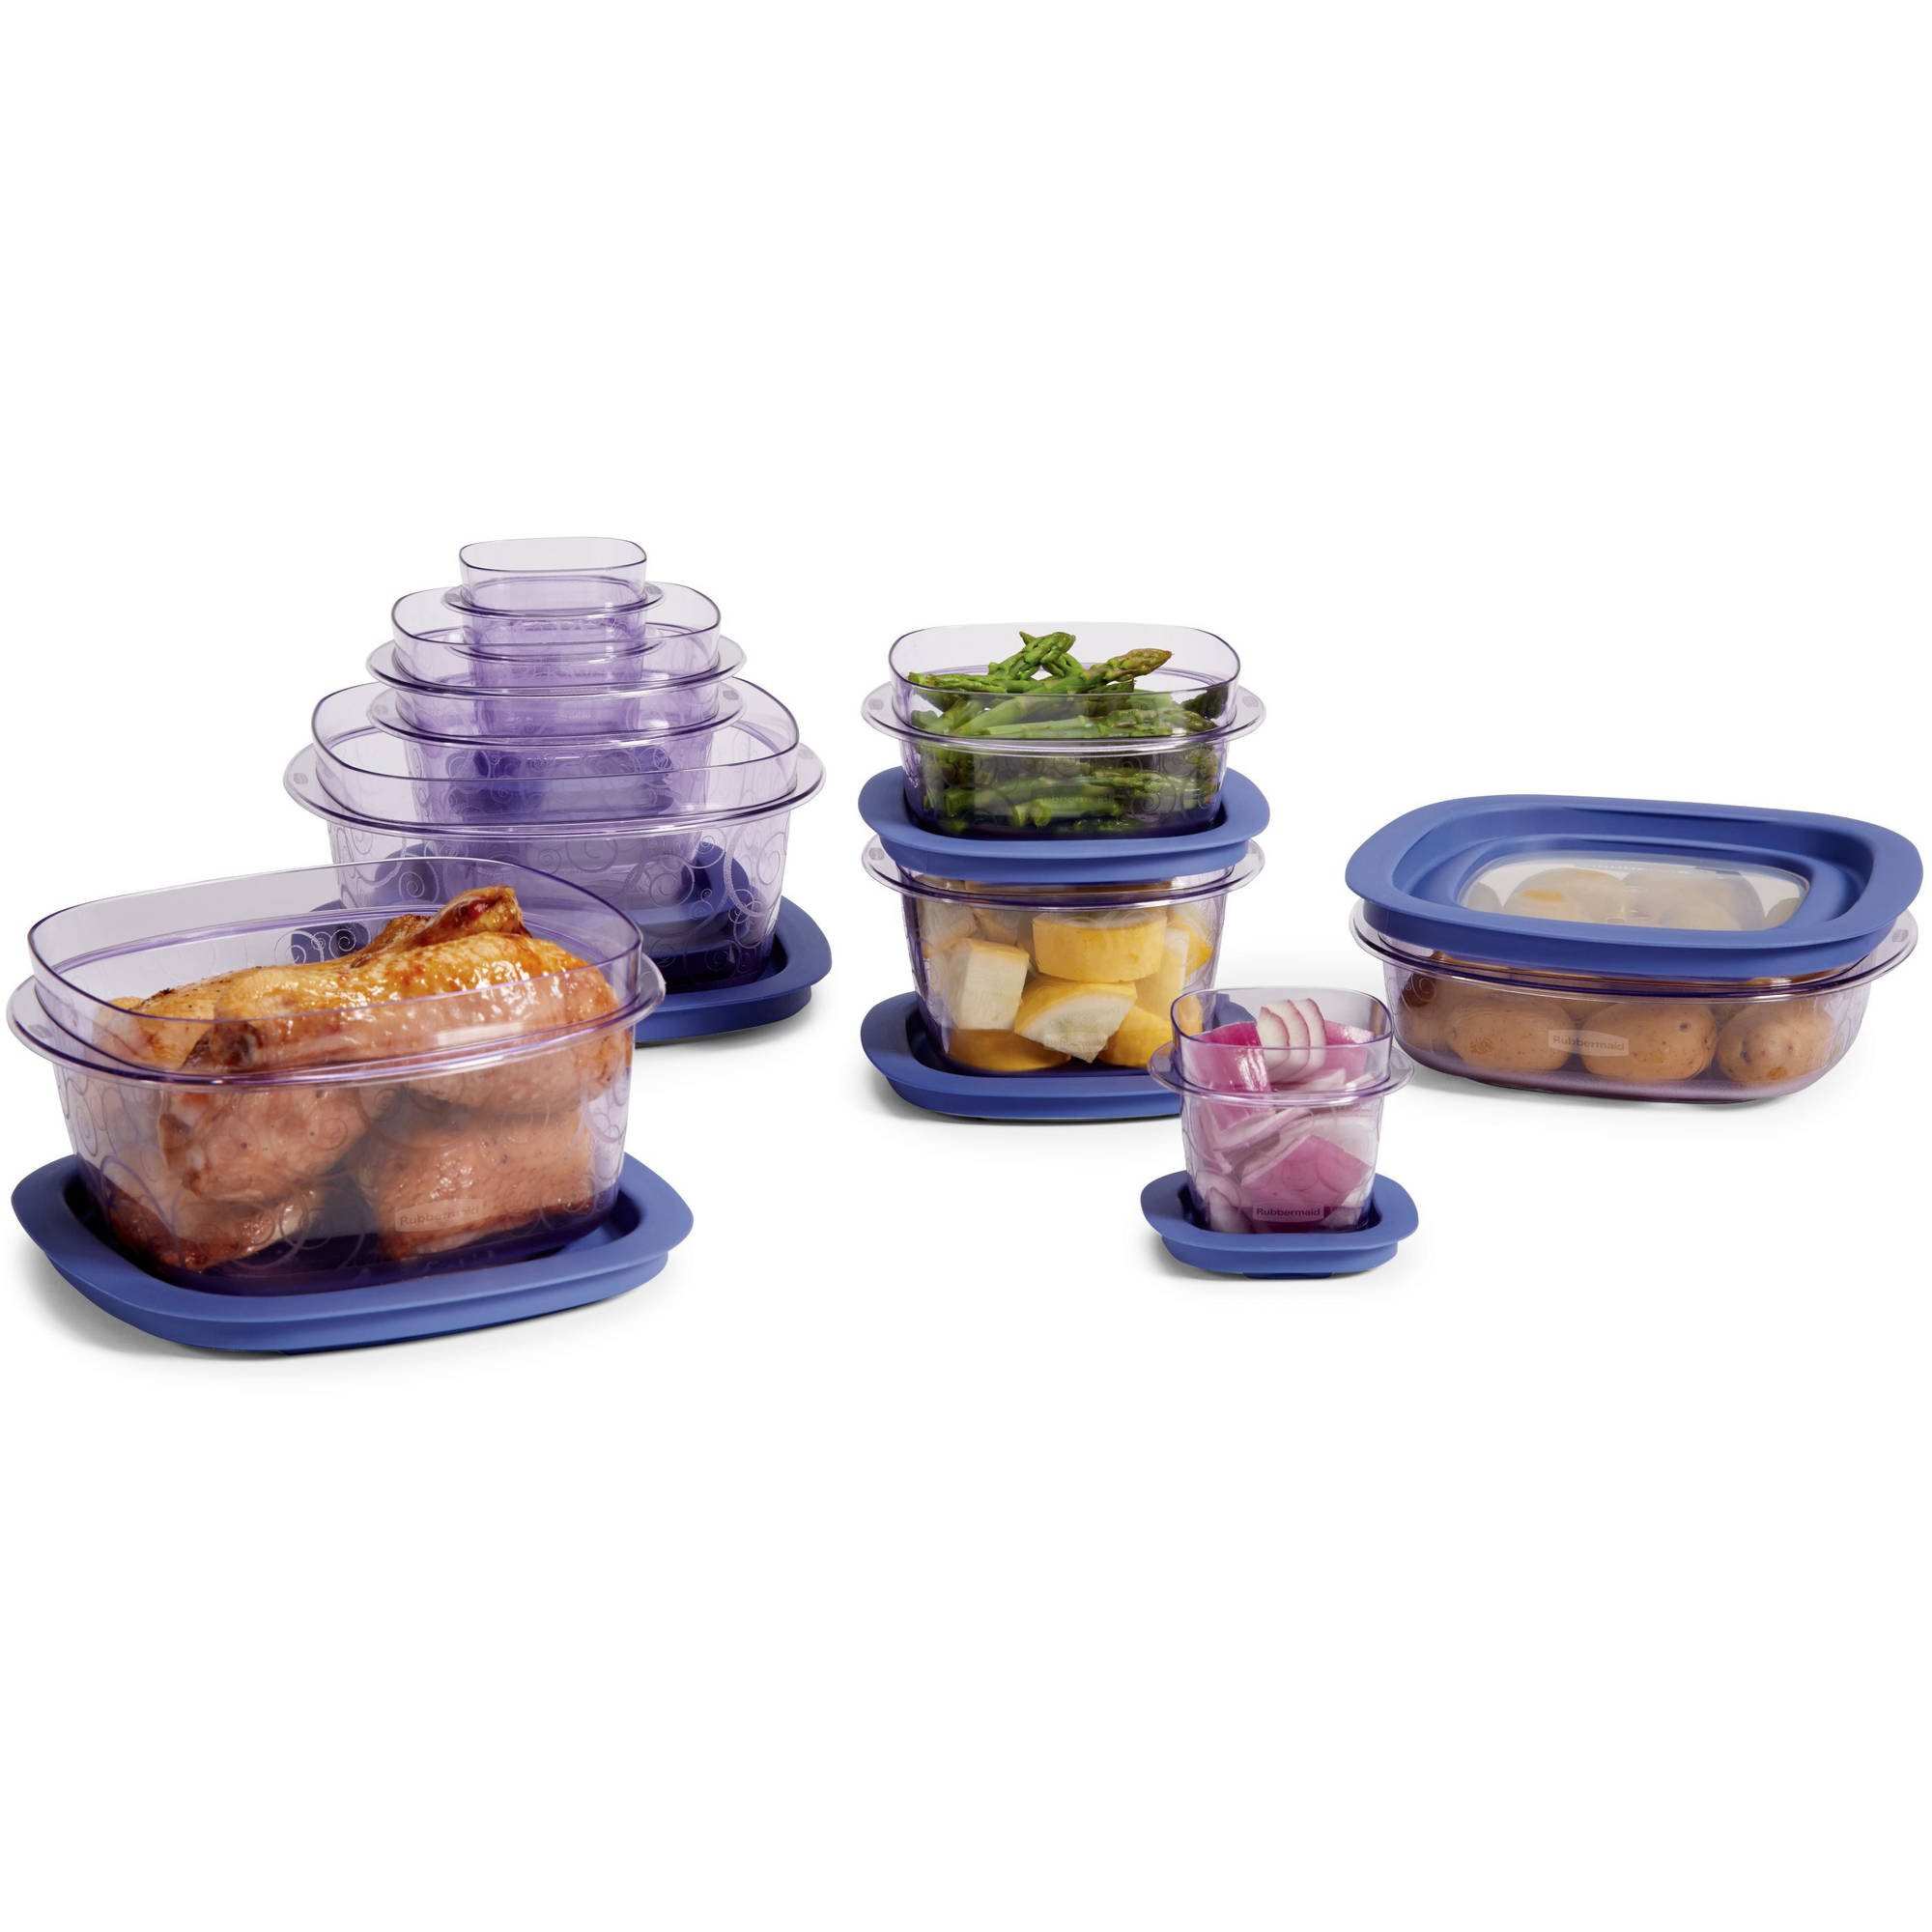 sc 1 st  Walmart & Rubbermaid Premier 20-Piece Set Purple - Walmart.com